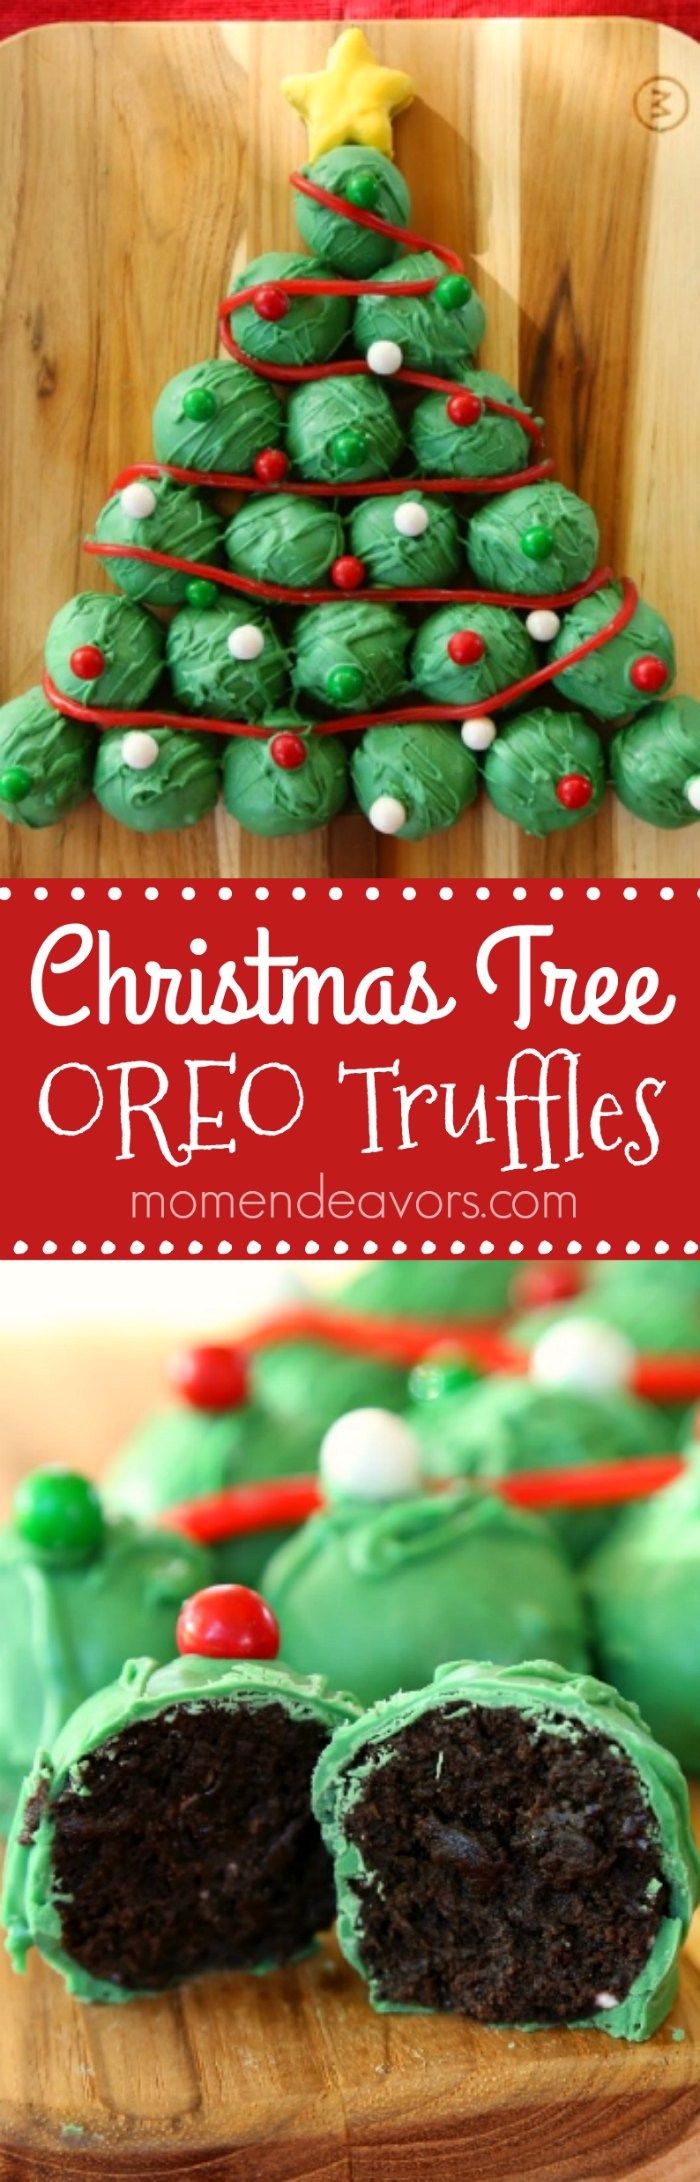 Christmas Tree Oreo Truffles